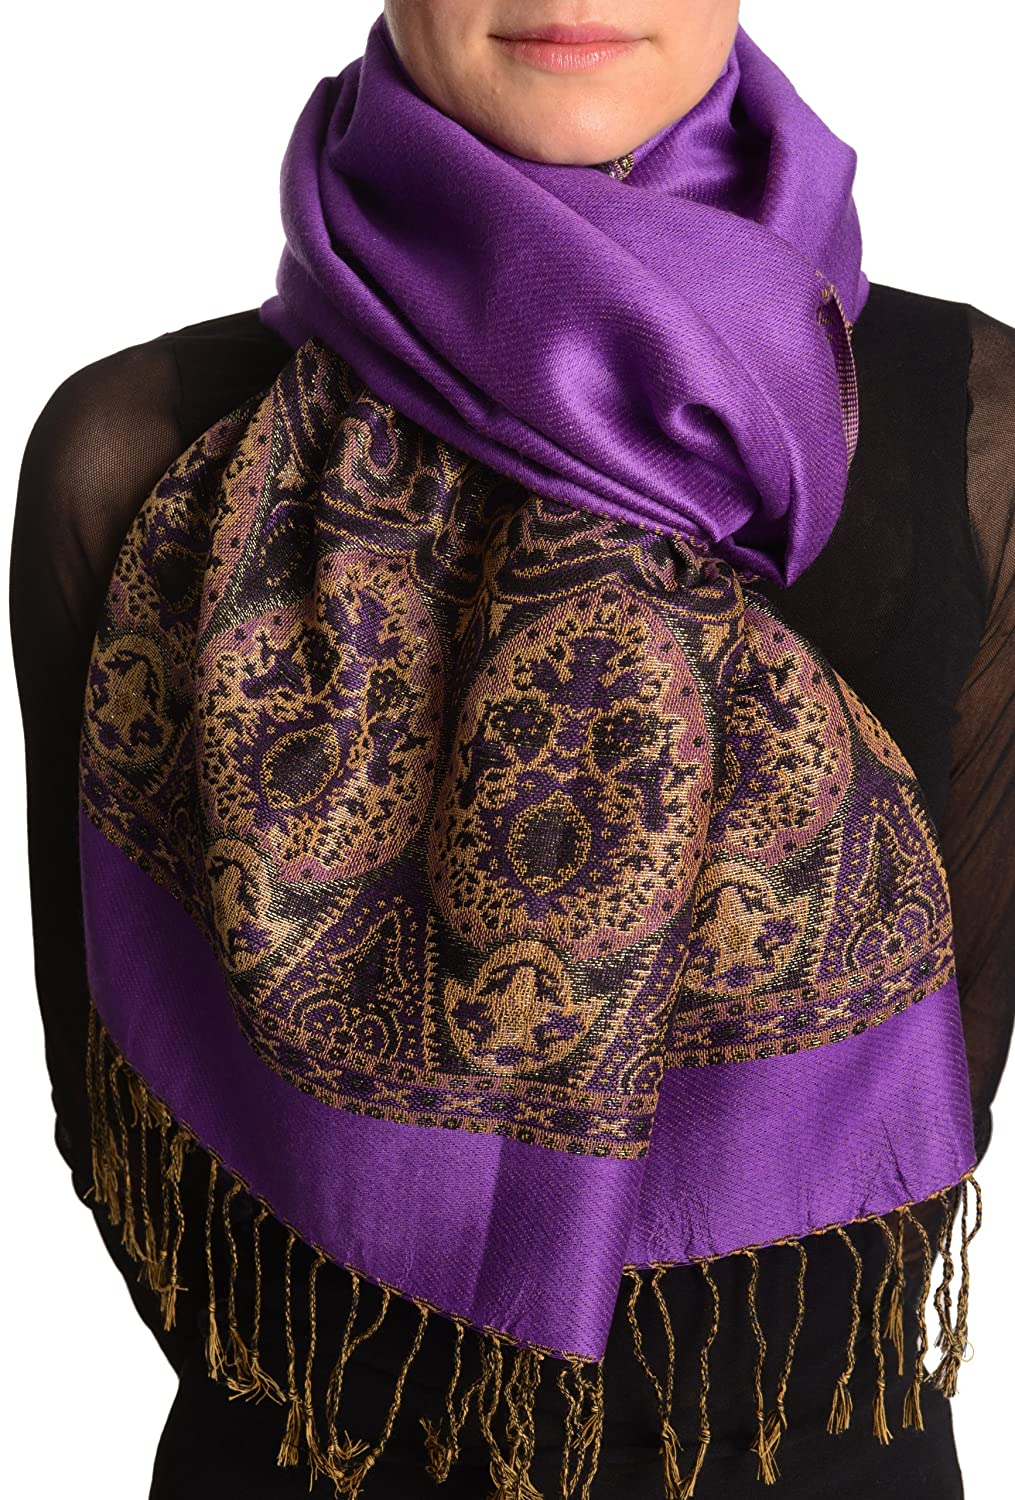 Violet Purple With Lurex Ornaments Pashmina Feel With Tassels - Scarf